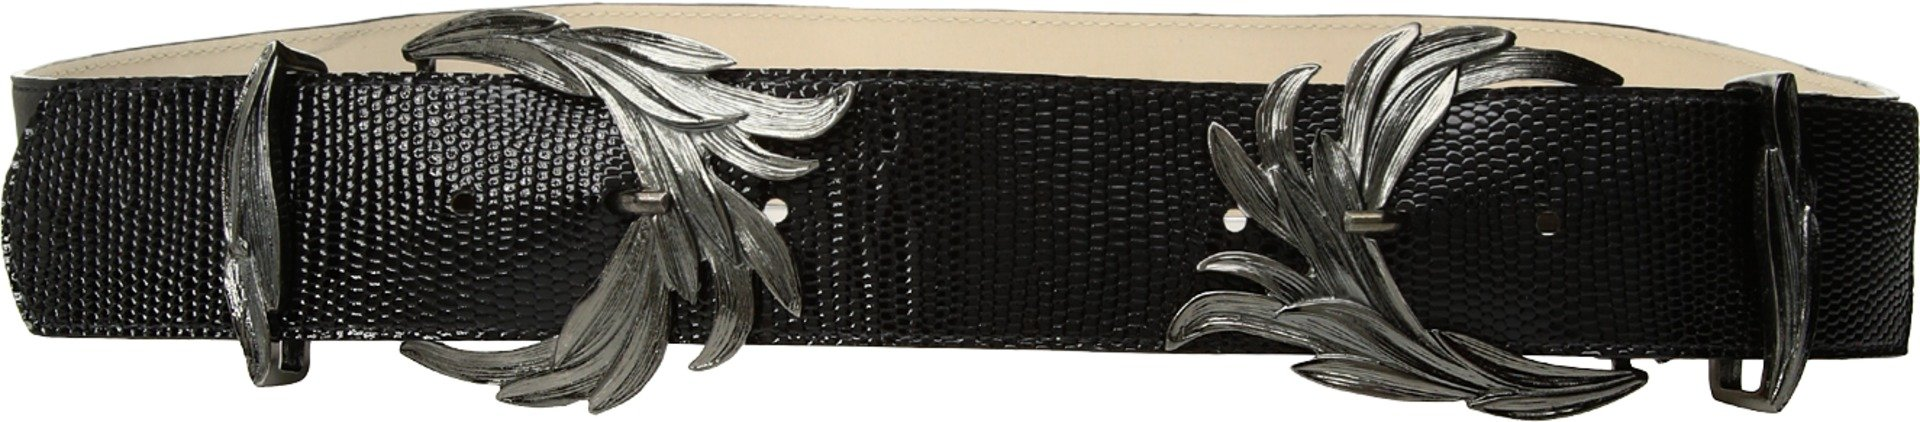 Leatherock Women's Berlin Belt Black MD (34'' Waist)